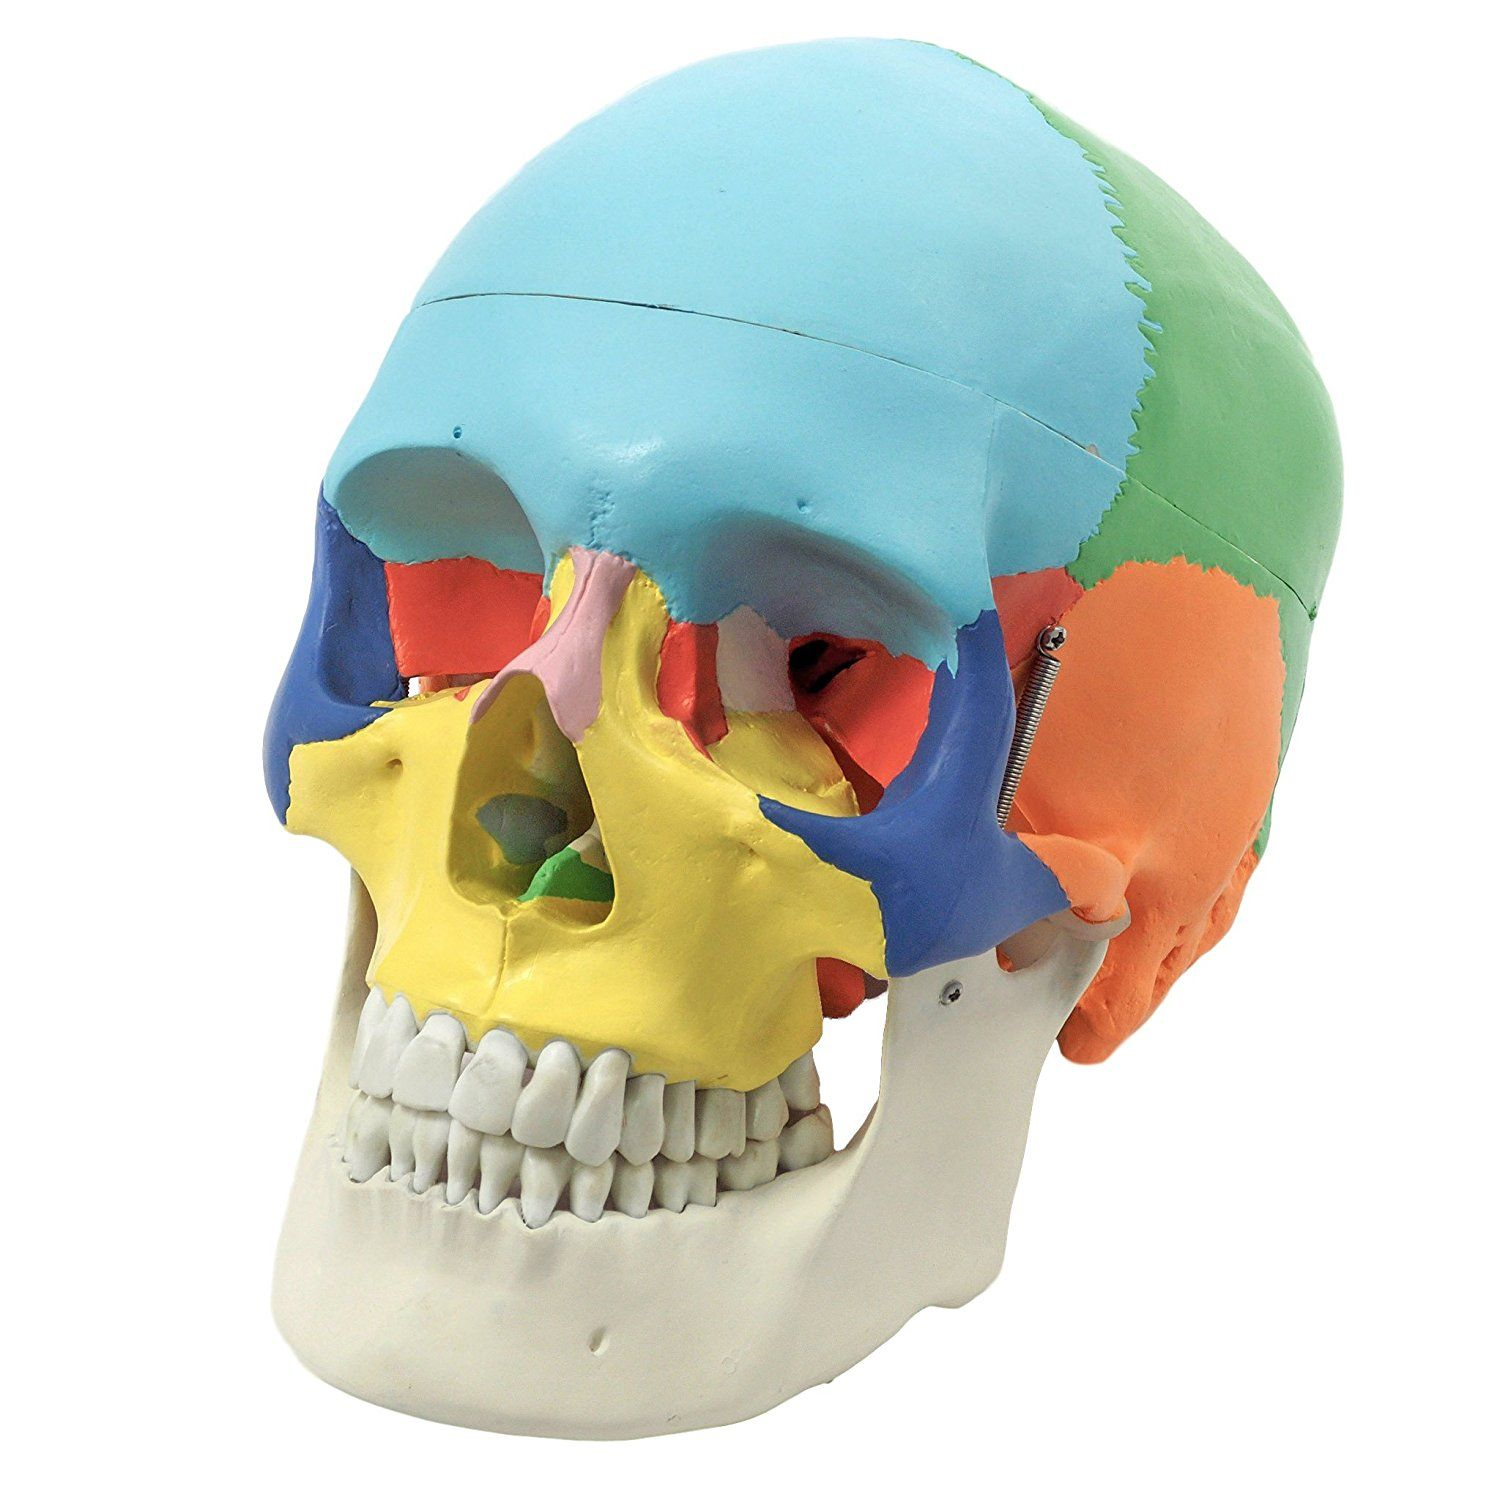 Anatomical Skull Model, Didactic Color Painted, 3Part